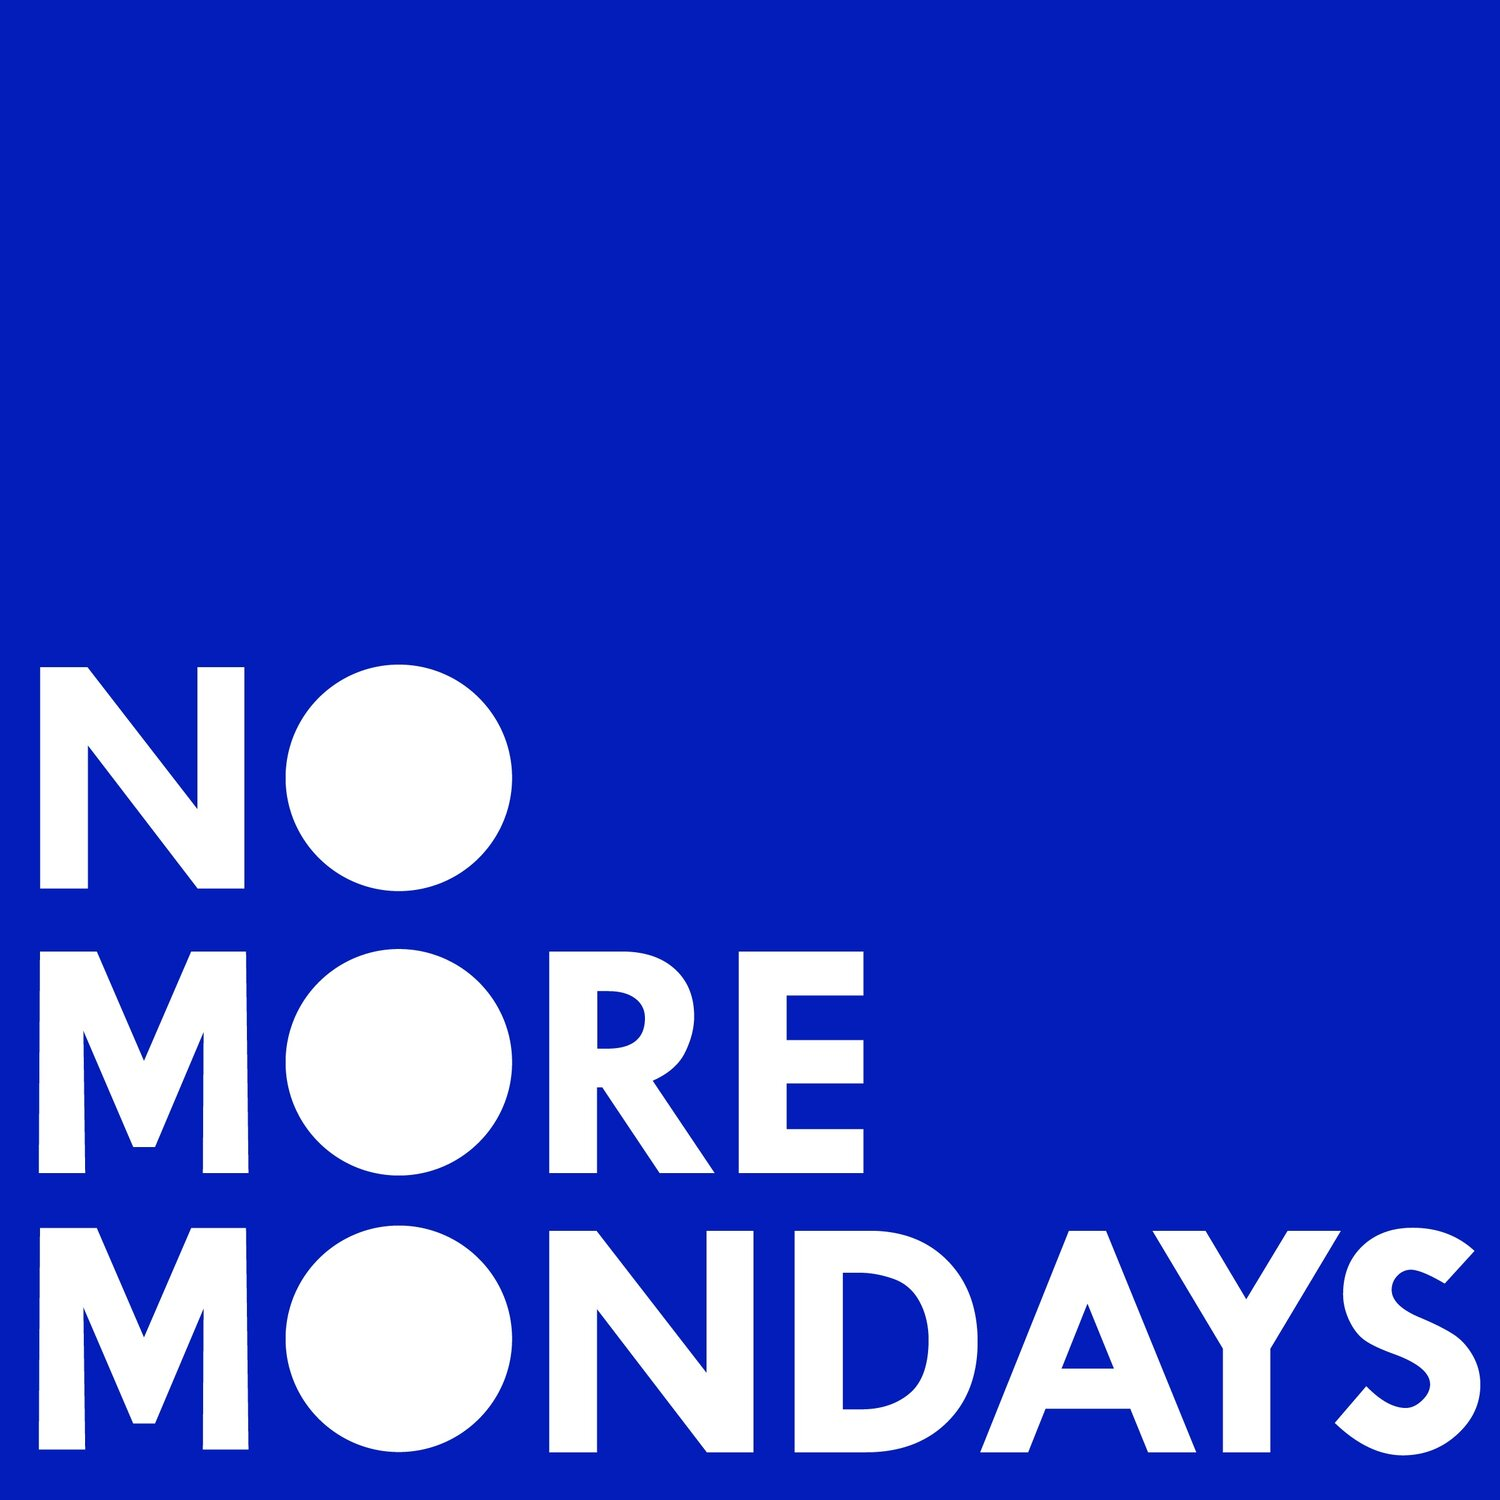 NO MORE MONDAYS